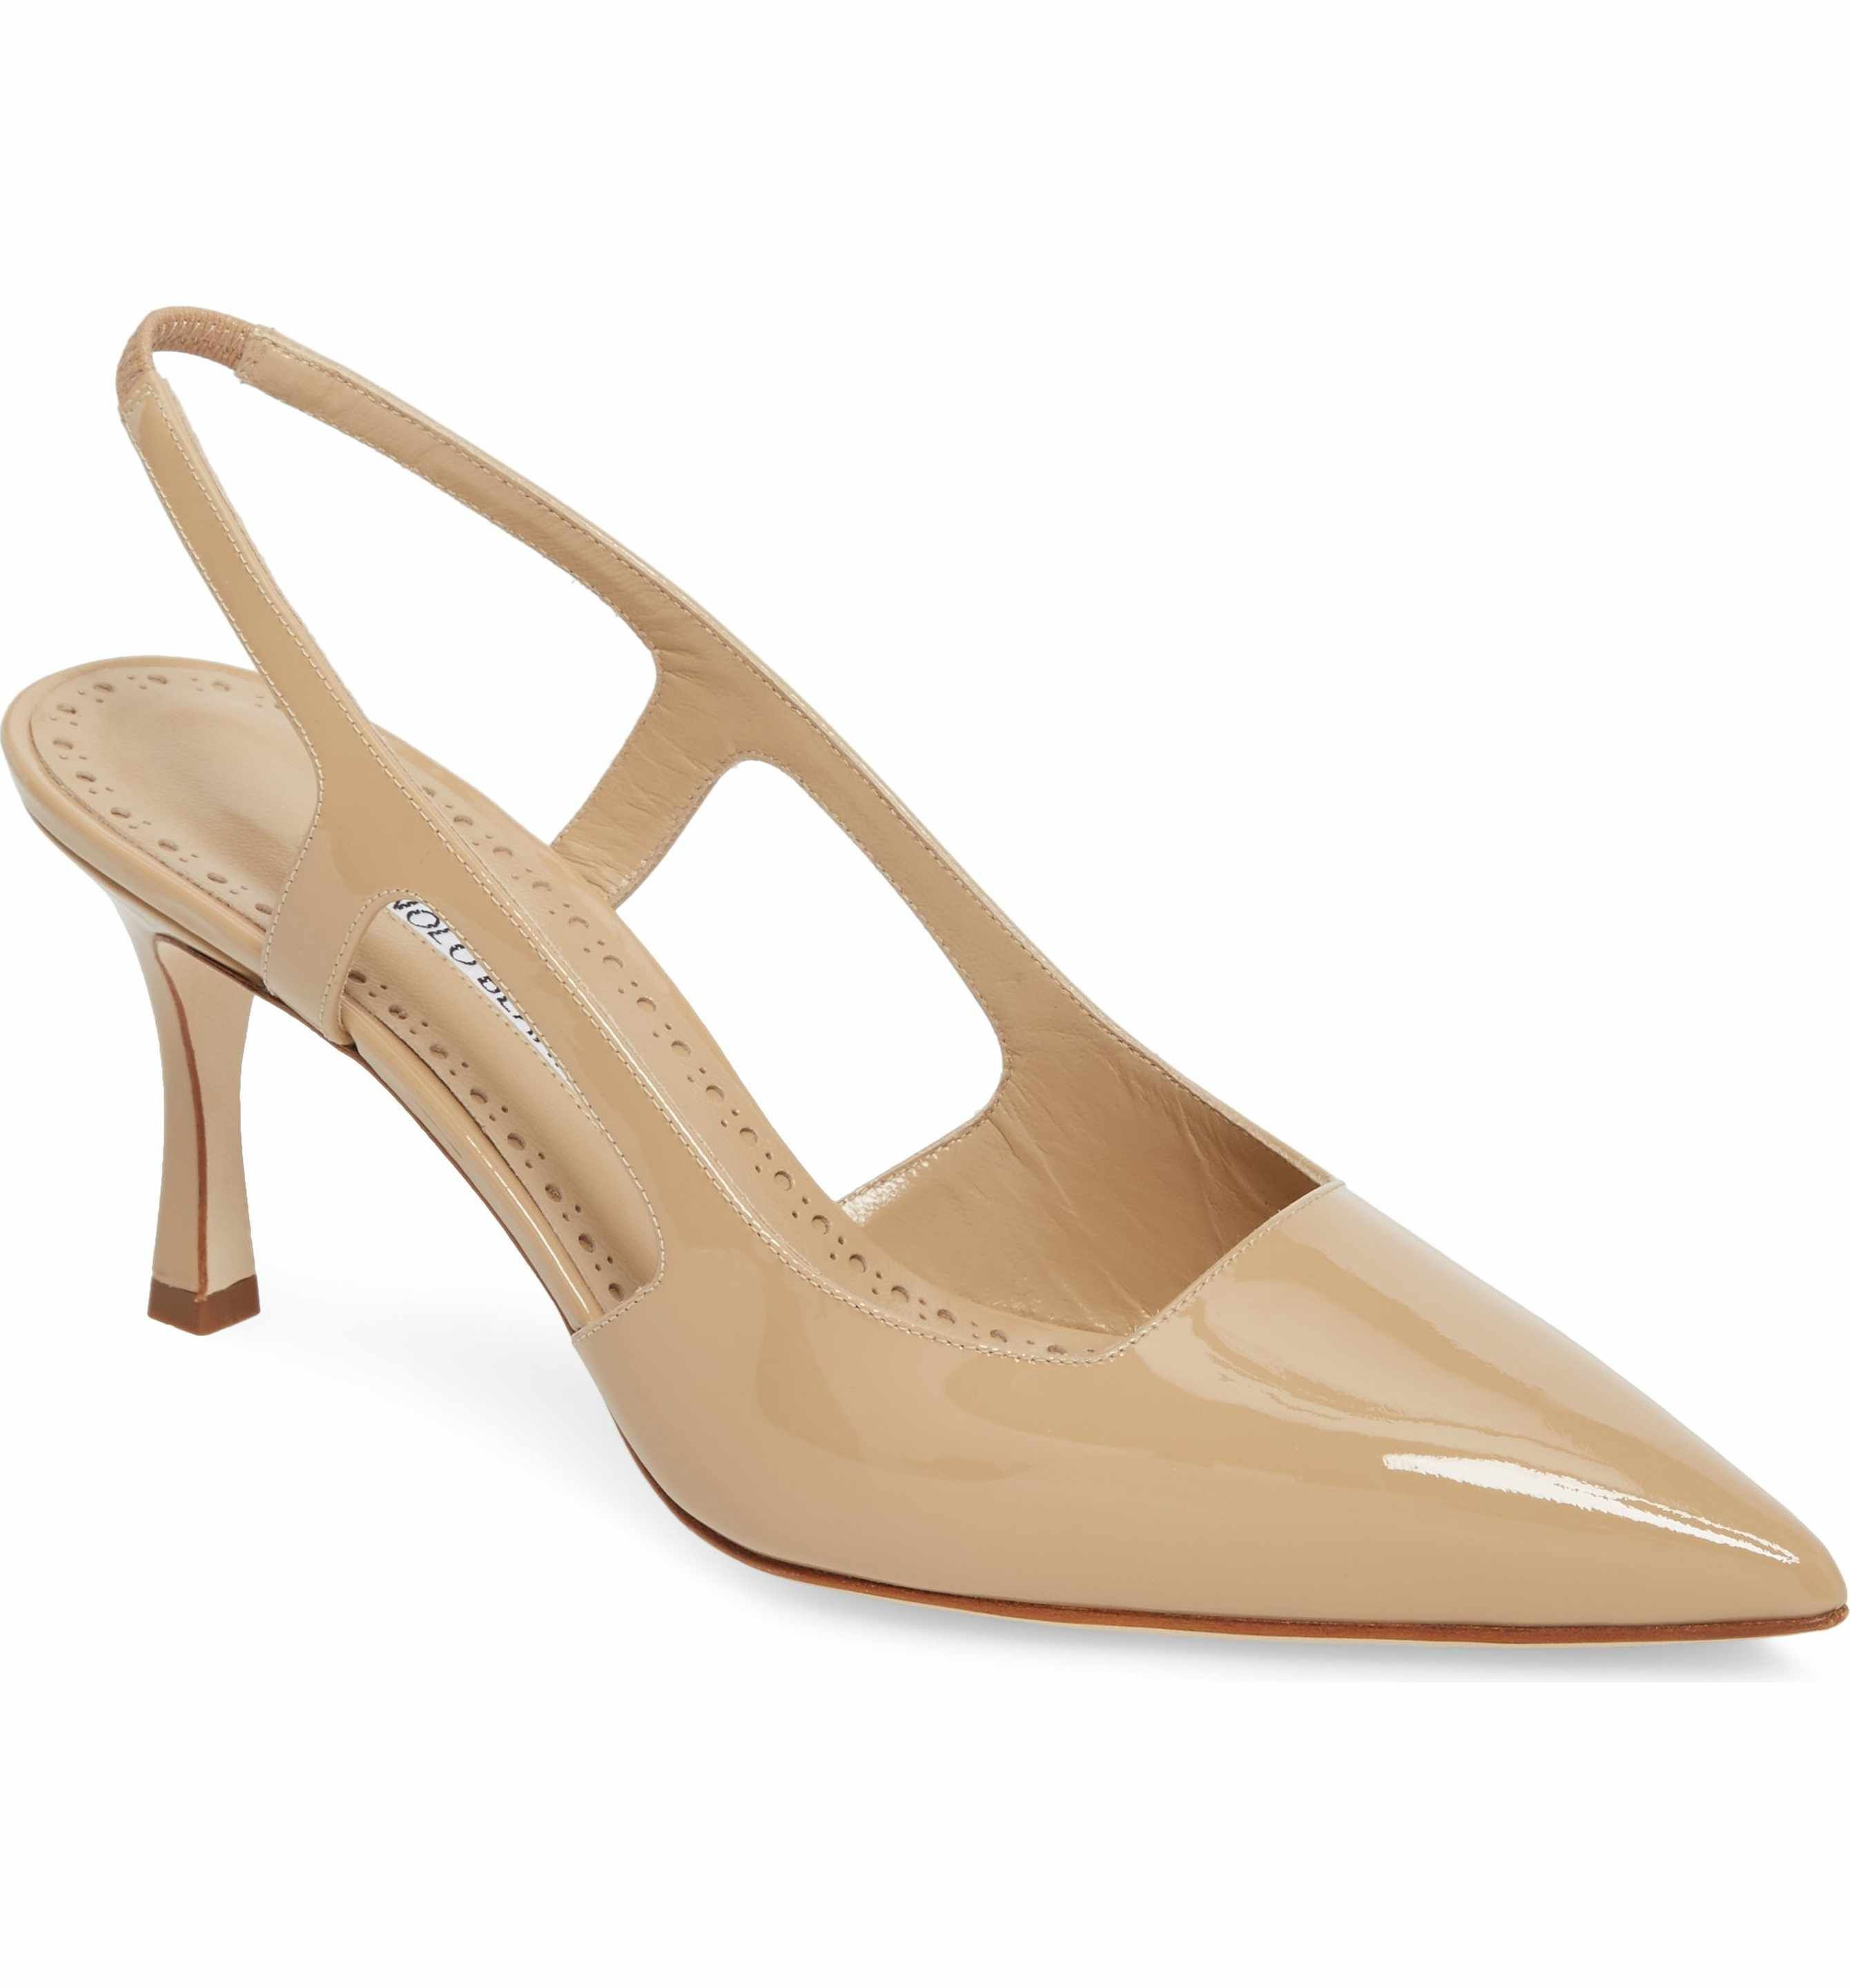 d2bb2011800 Main Image - Manolo Blahnik Bretto Slingback Pointy Toe Pump (Women ...